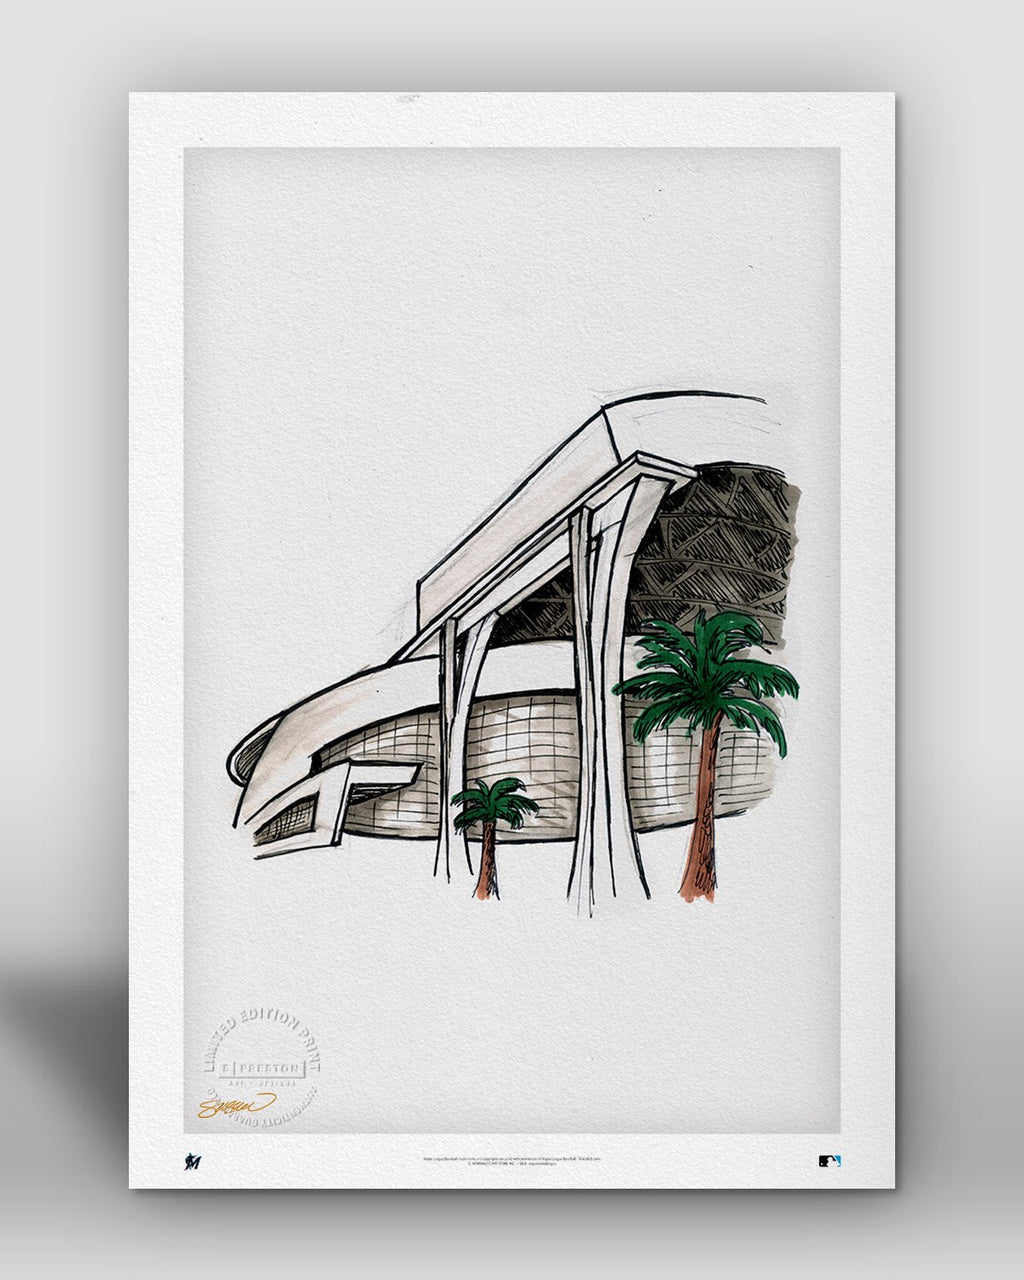 Marlins Park Ink Sketch - Miami Marlins - by S. Preston